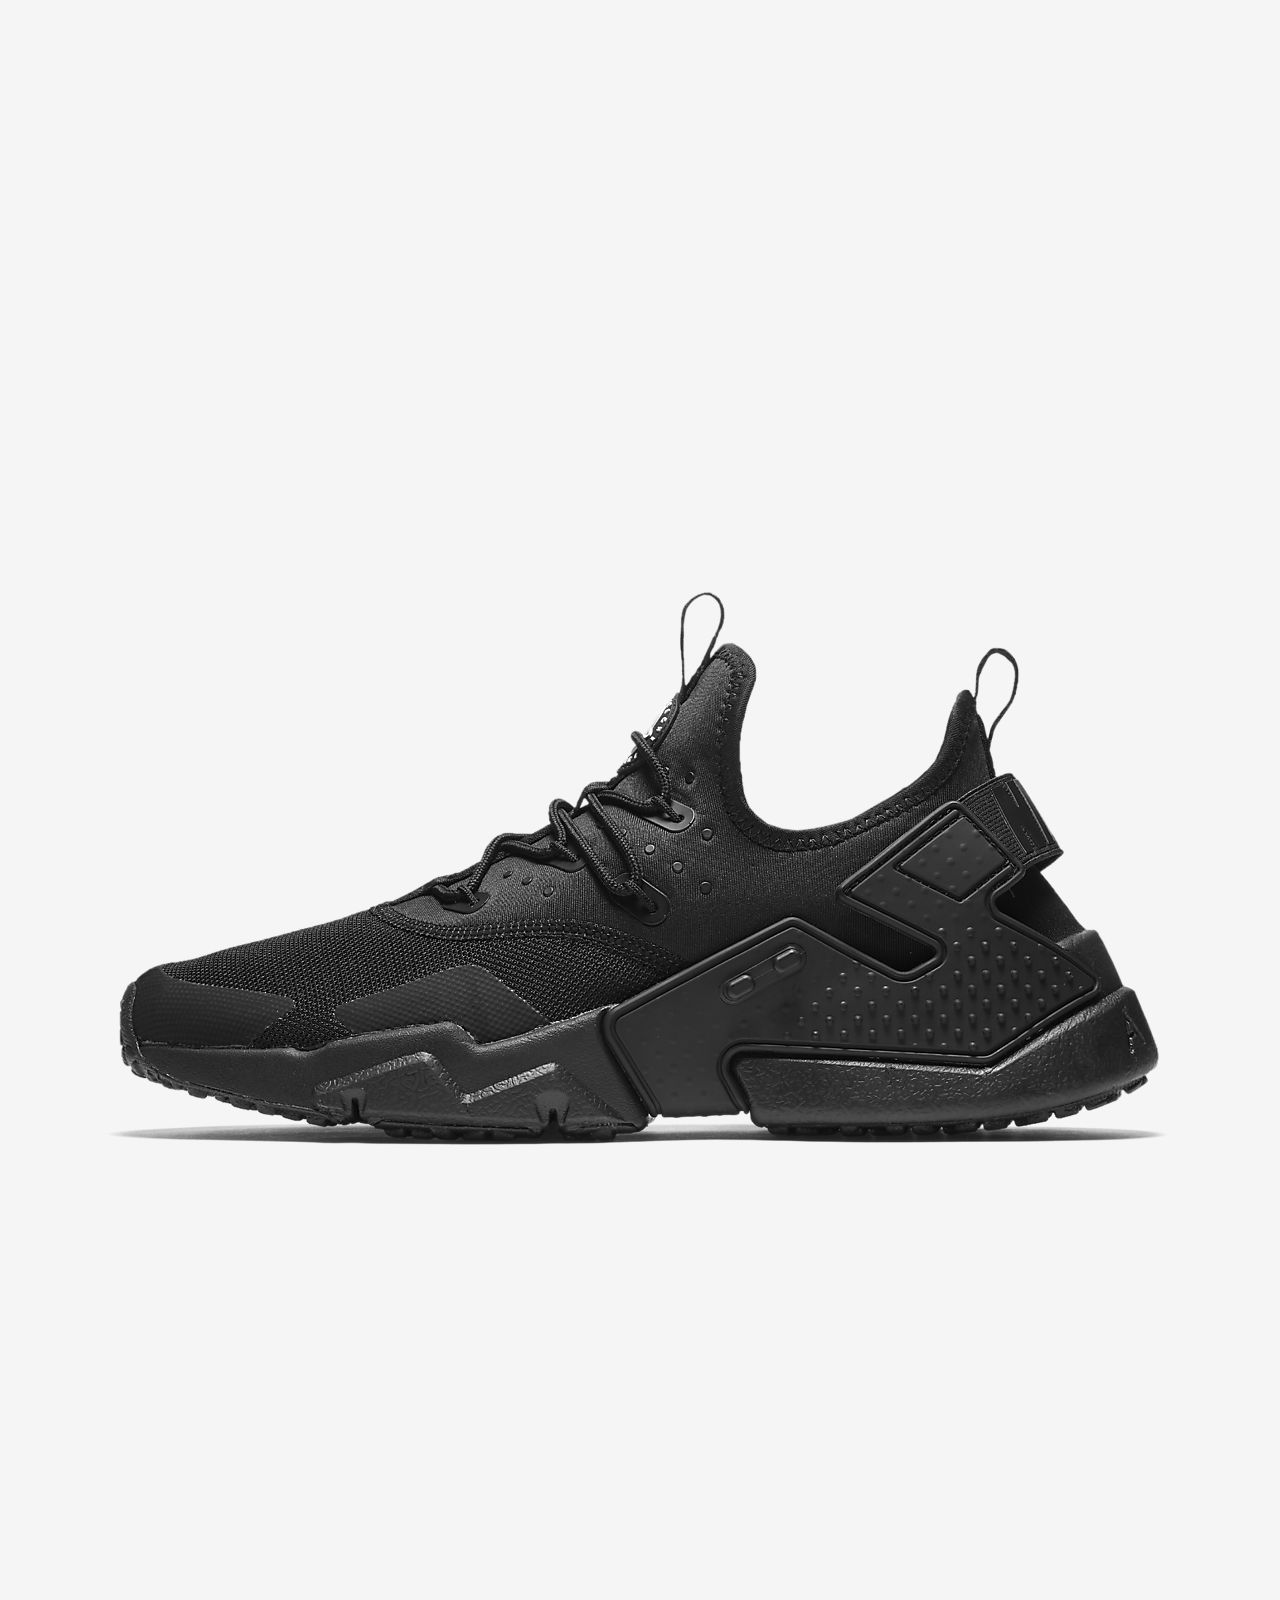 3b02d32ed147 Nike Men s Shoe Huarache Drift in 2019